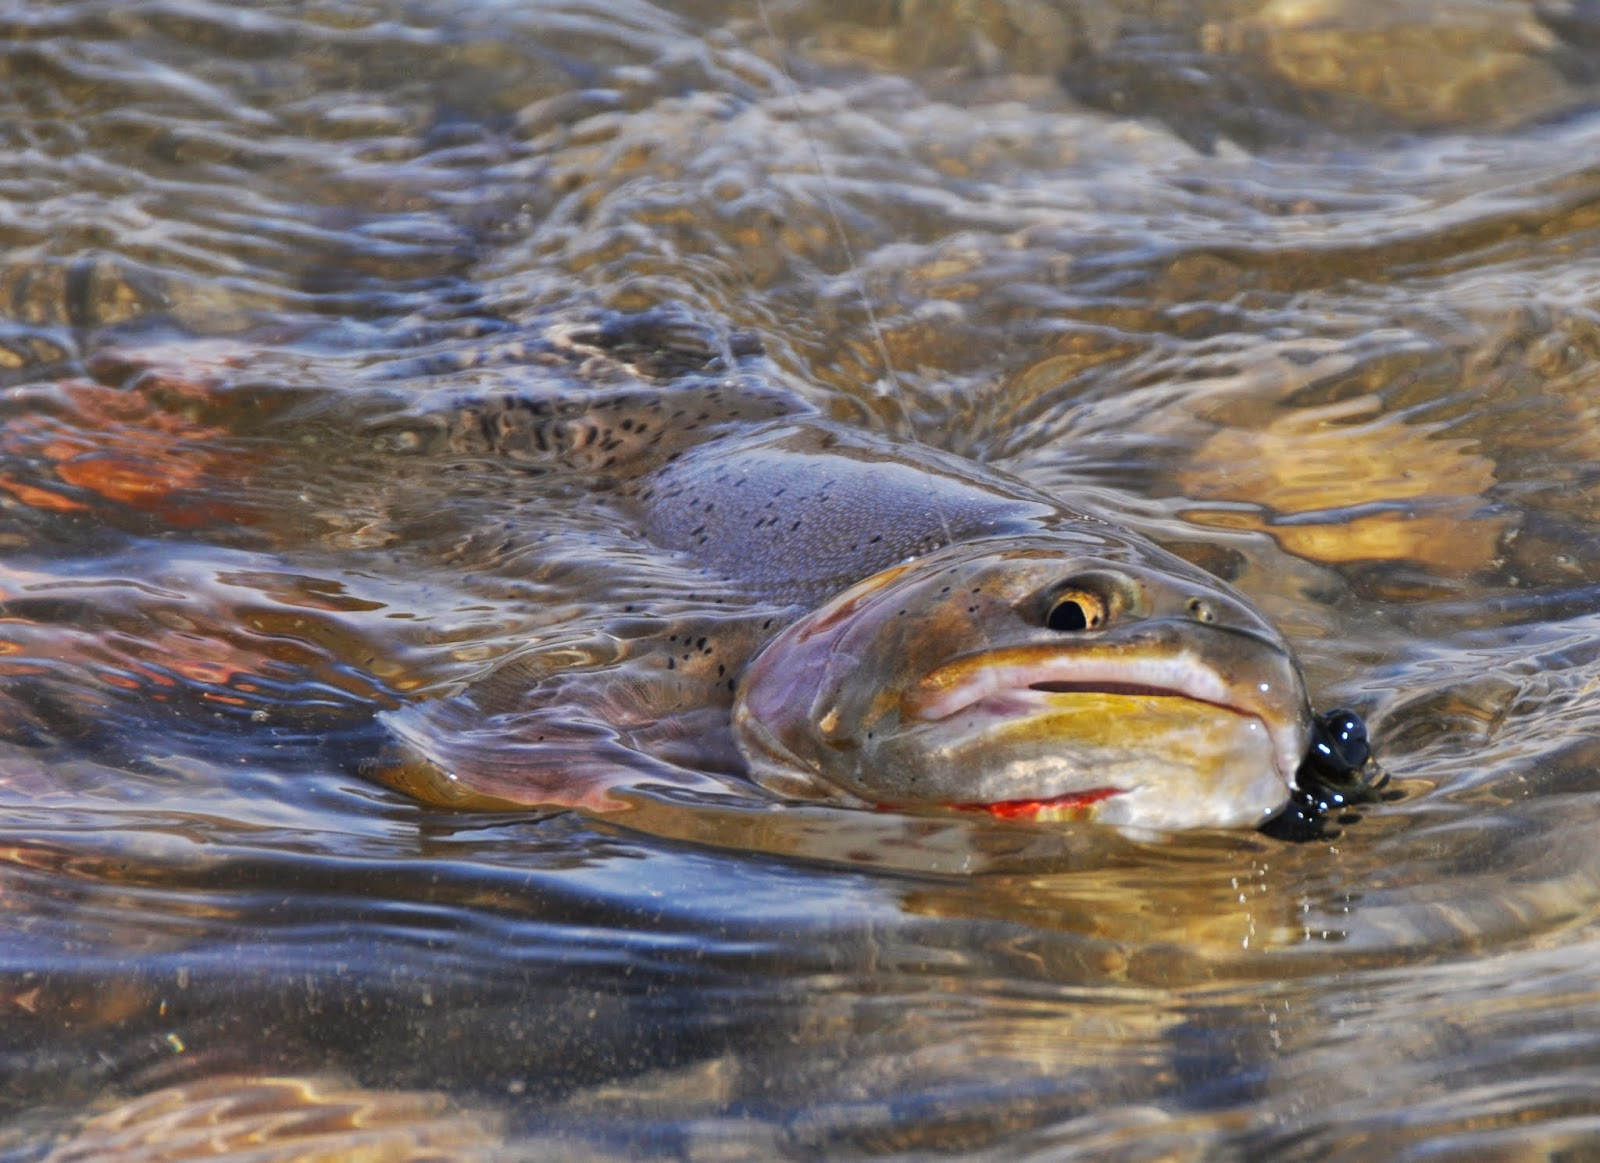 Jackson hole fly fishing report february 15 2015 for Jackson hole fly fishing